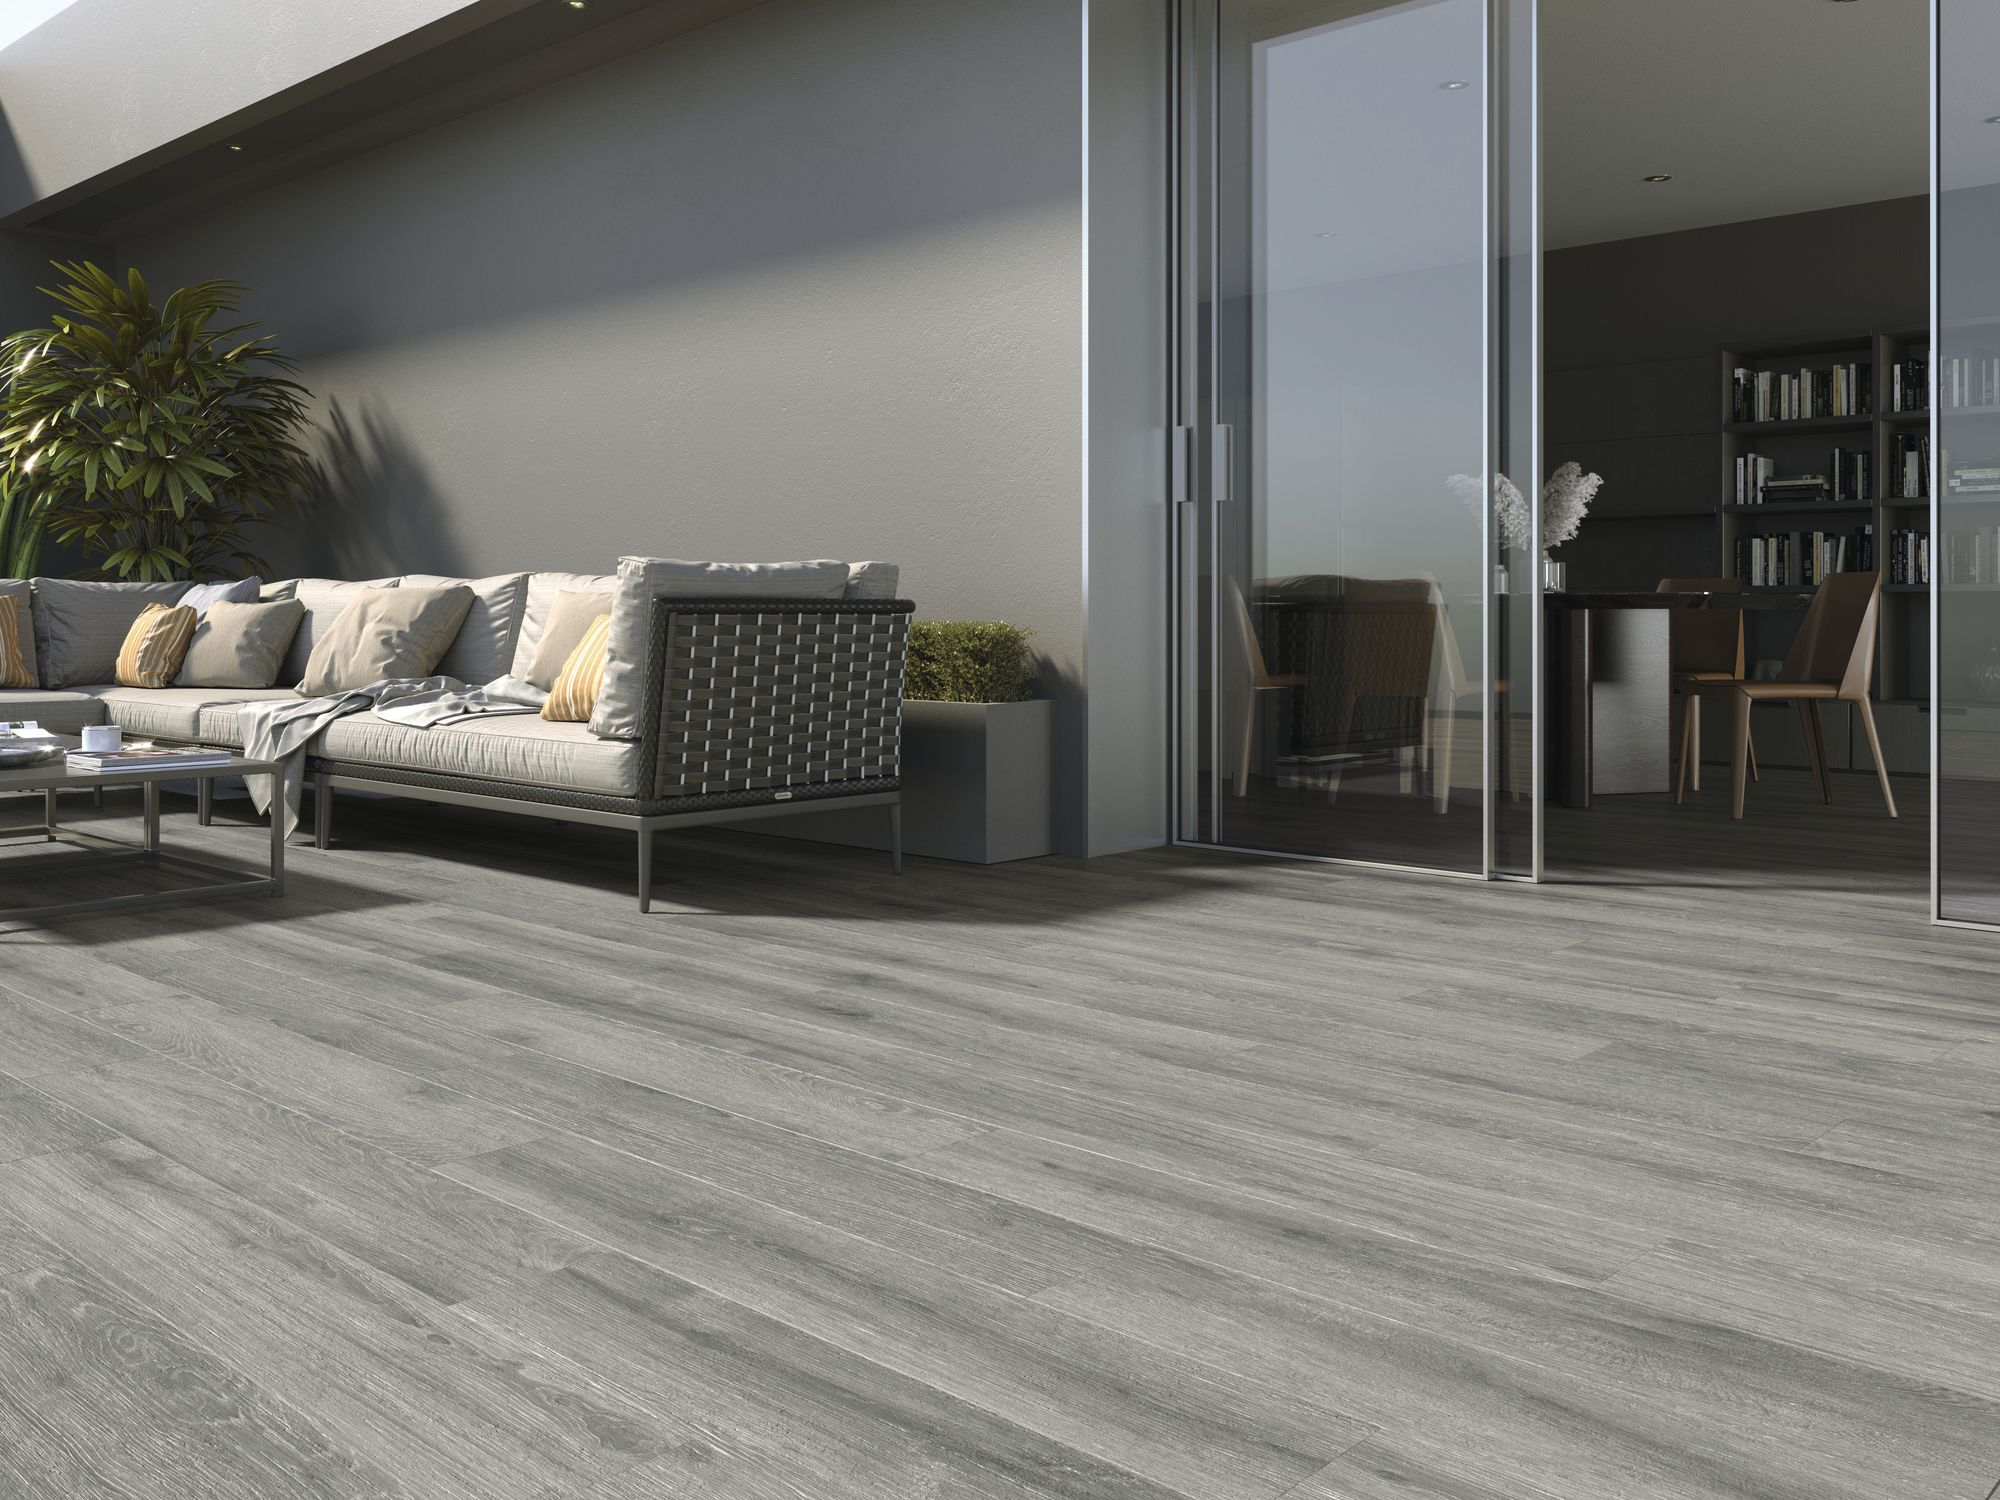 Ducale Grey Anti-Slip 20x120 cm.